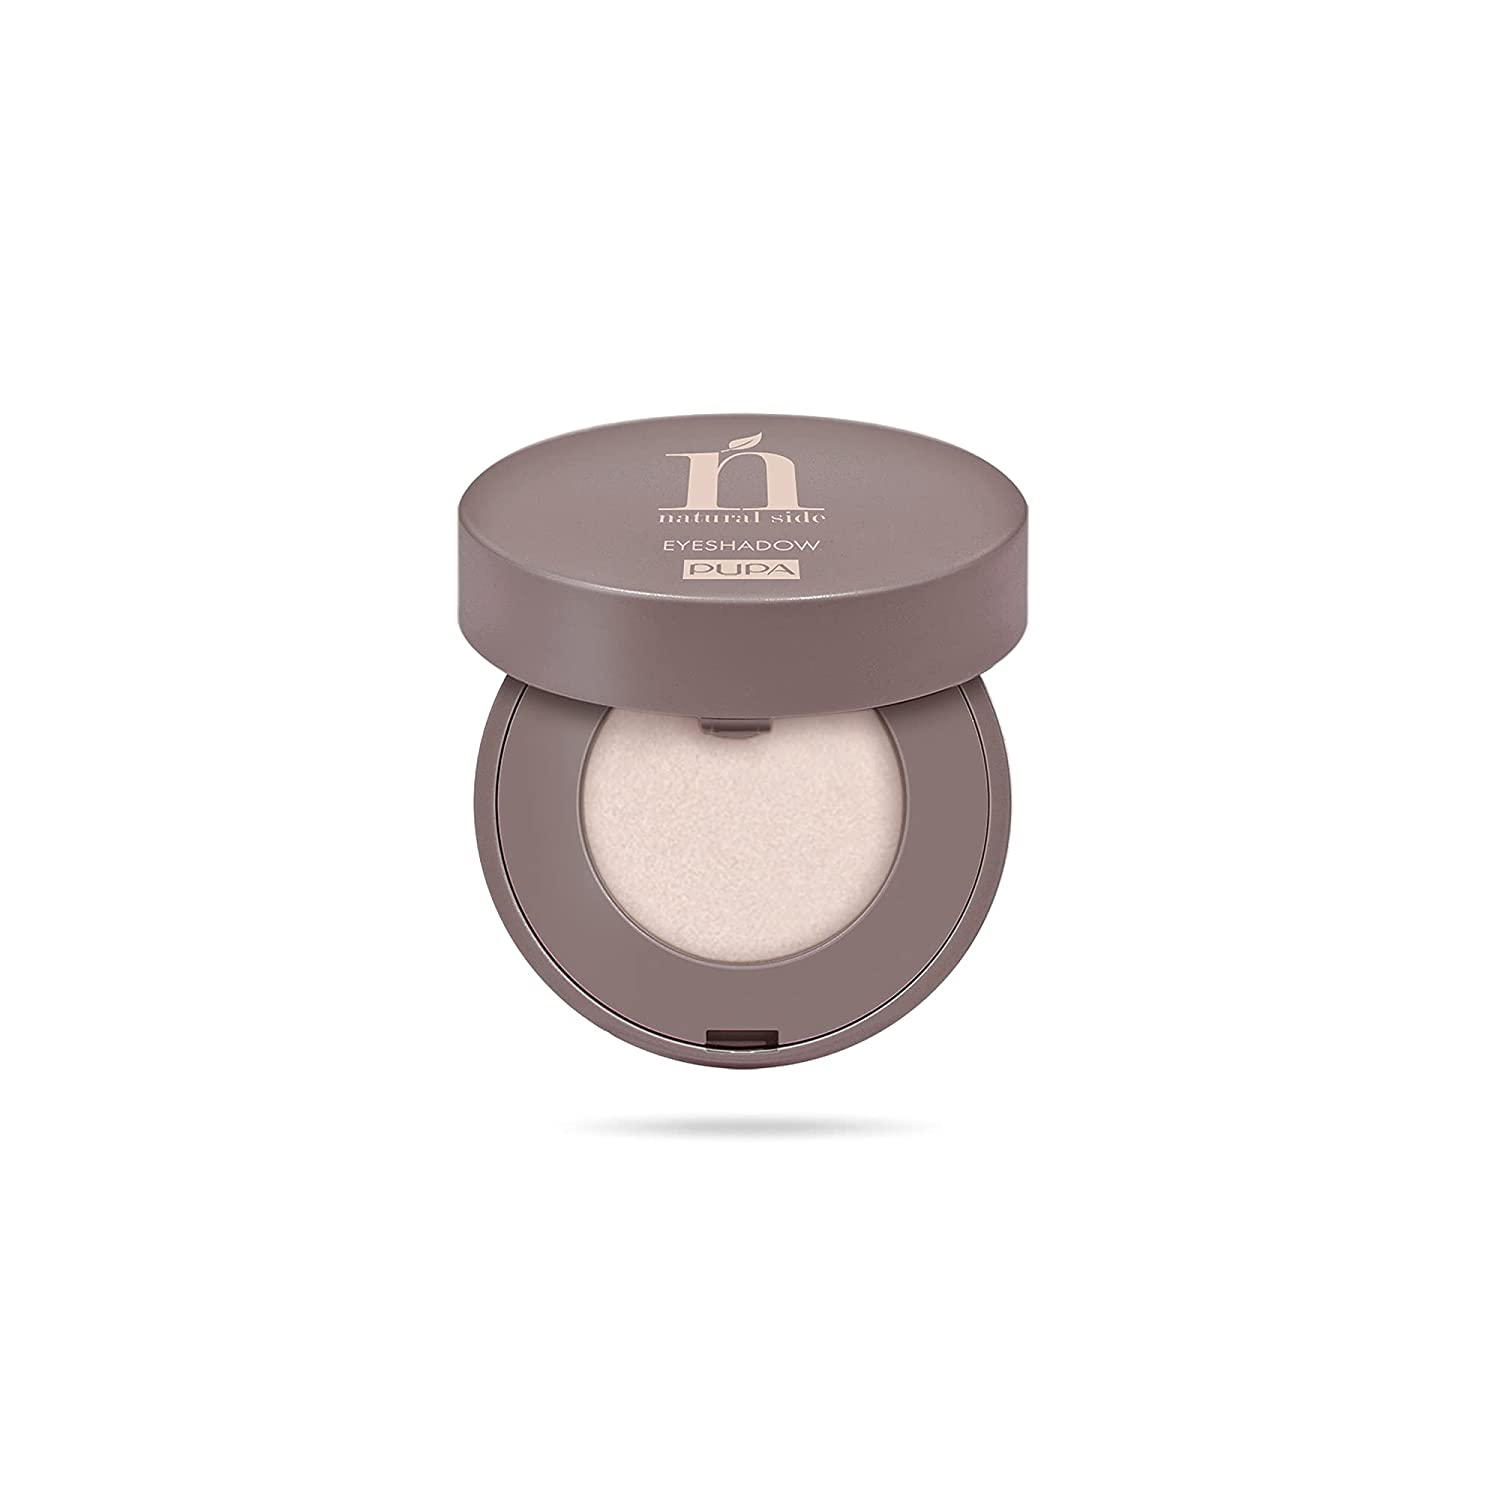 Natural Side Compact Eyeshadow – 003 Silky White by Pupa Milano for Women – 0.07 oz Eye Shadow